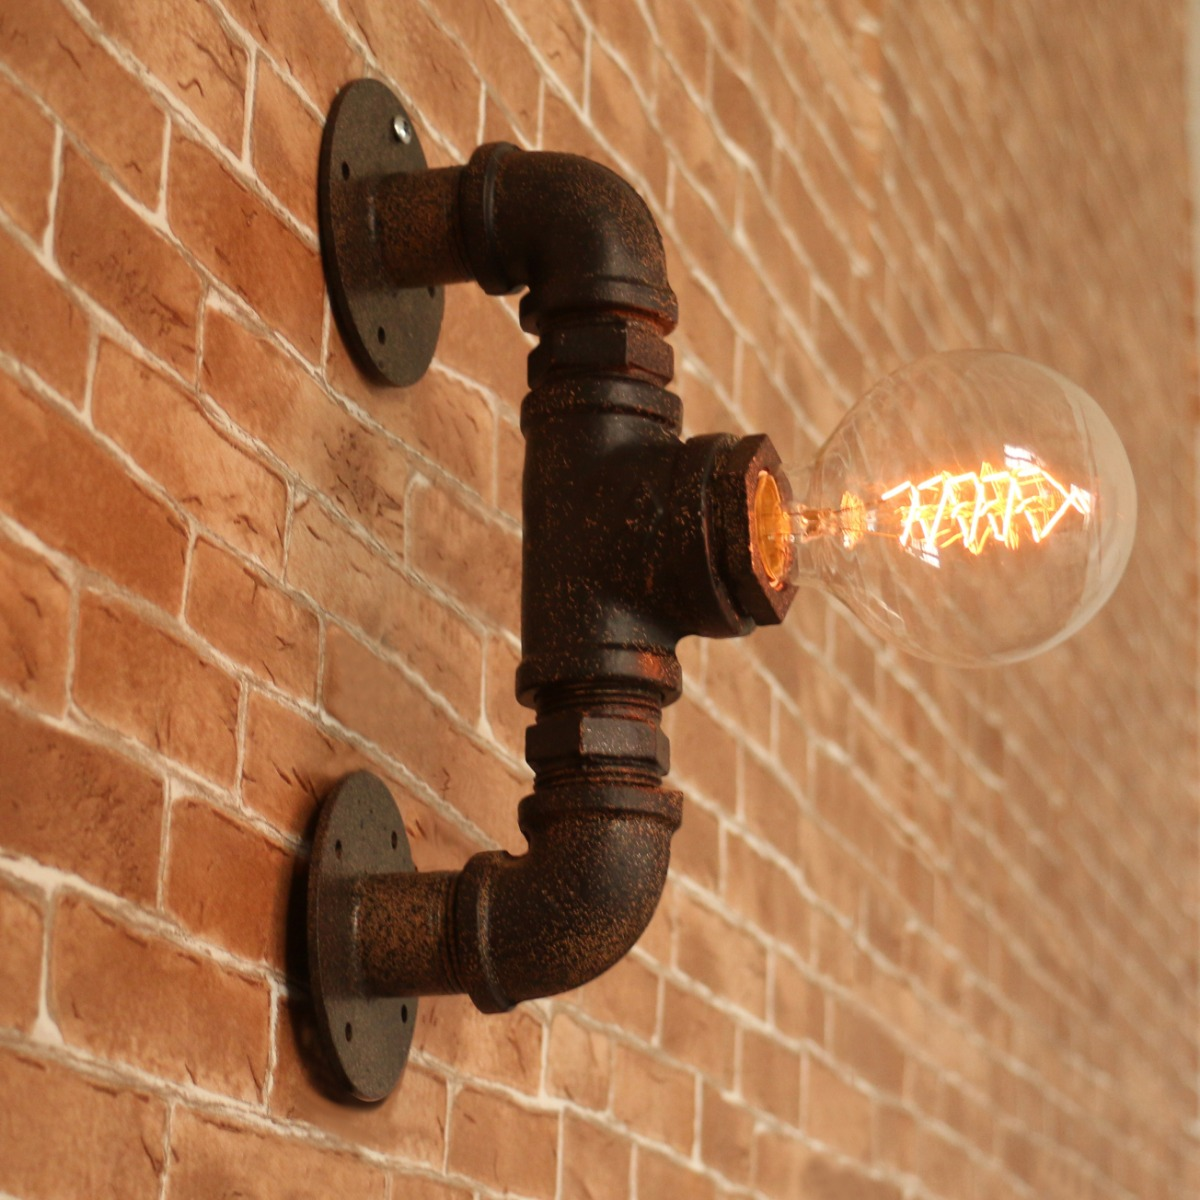 Small Rustic Wall Lights : Industrial Wall Pipe Lamp Retro Wall Light Rustic Vintage Wall Sconce Light eBay